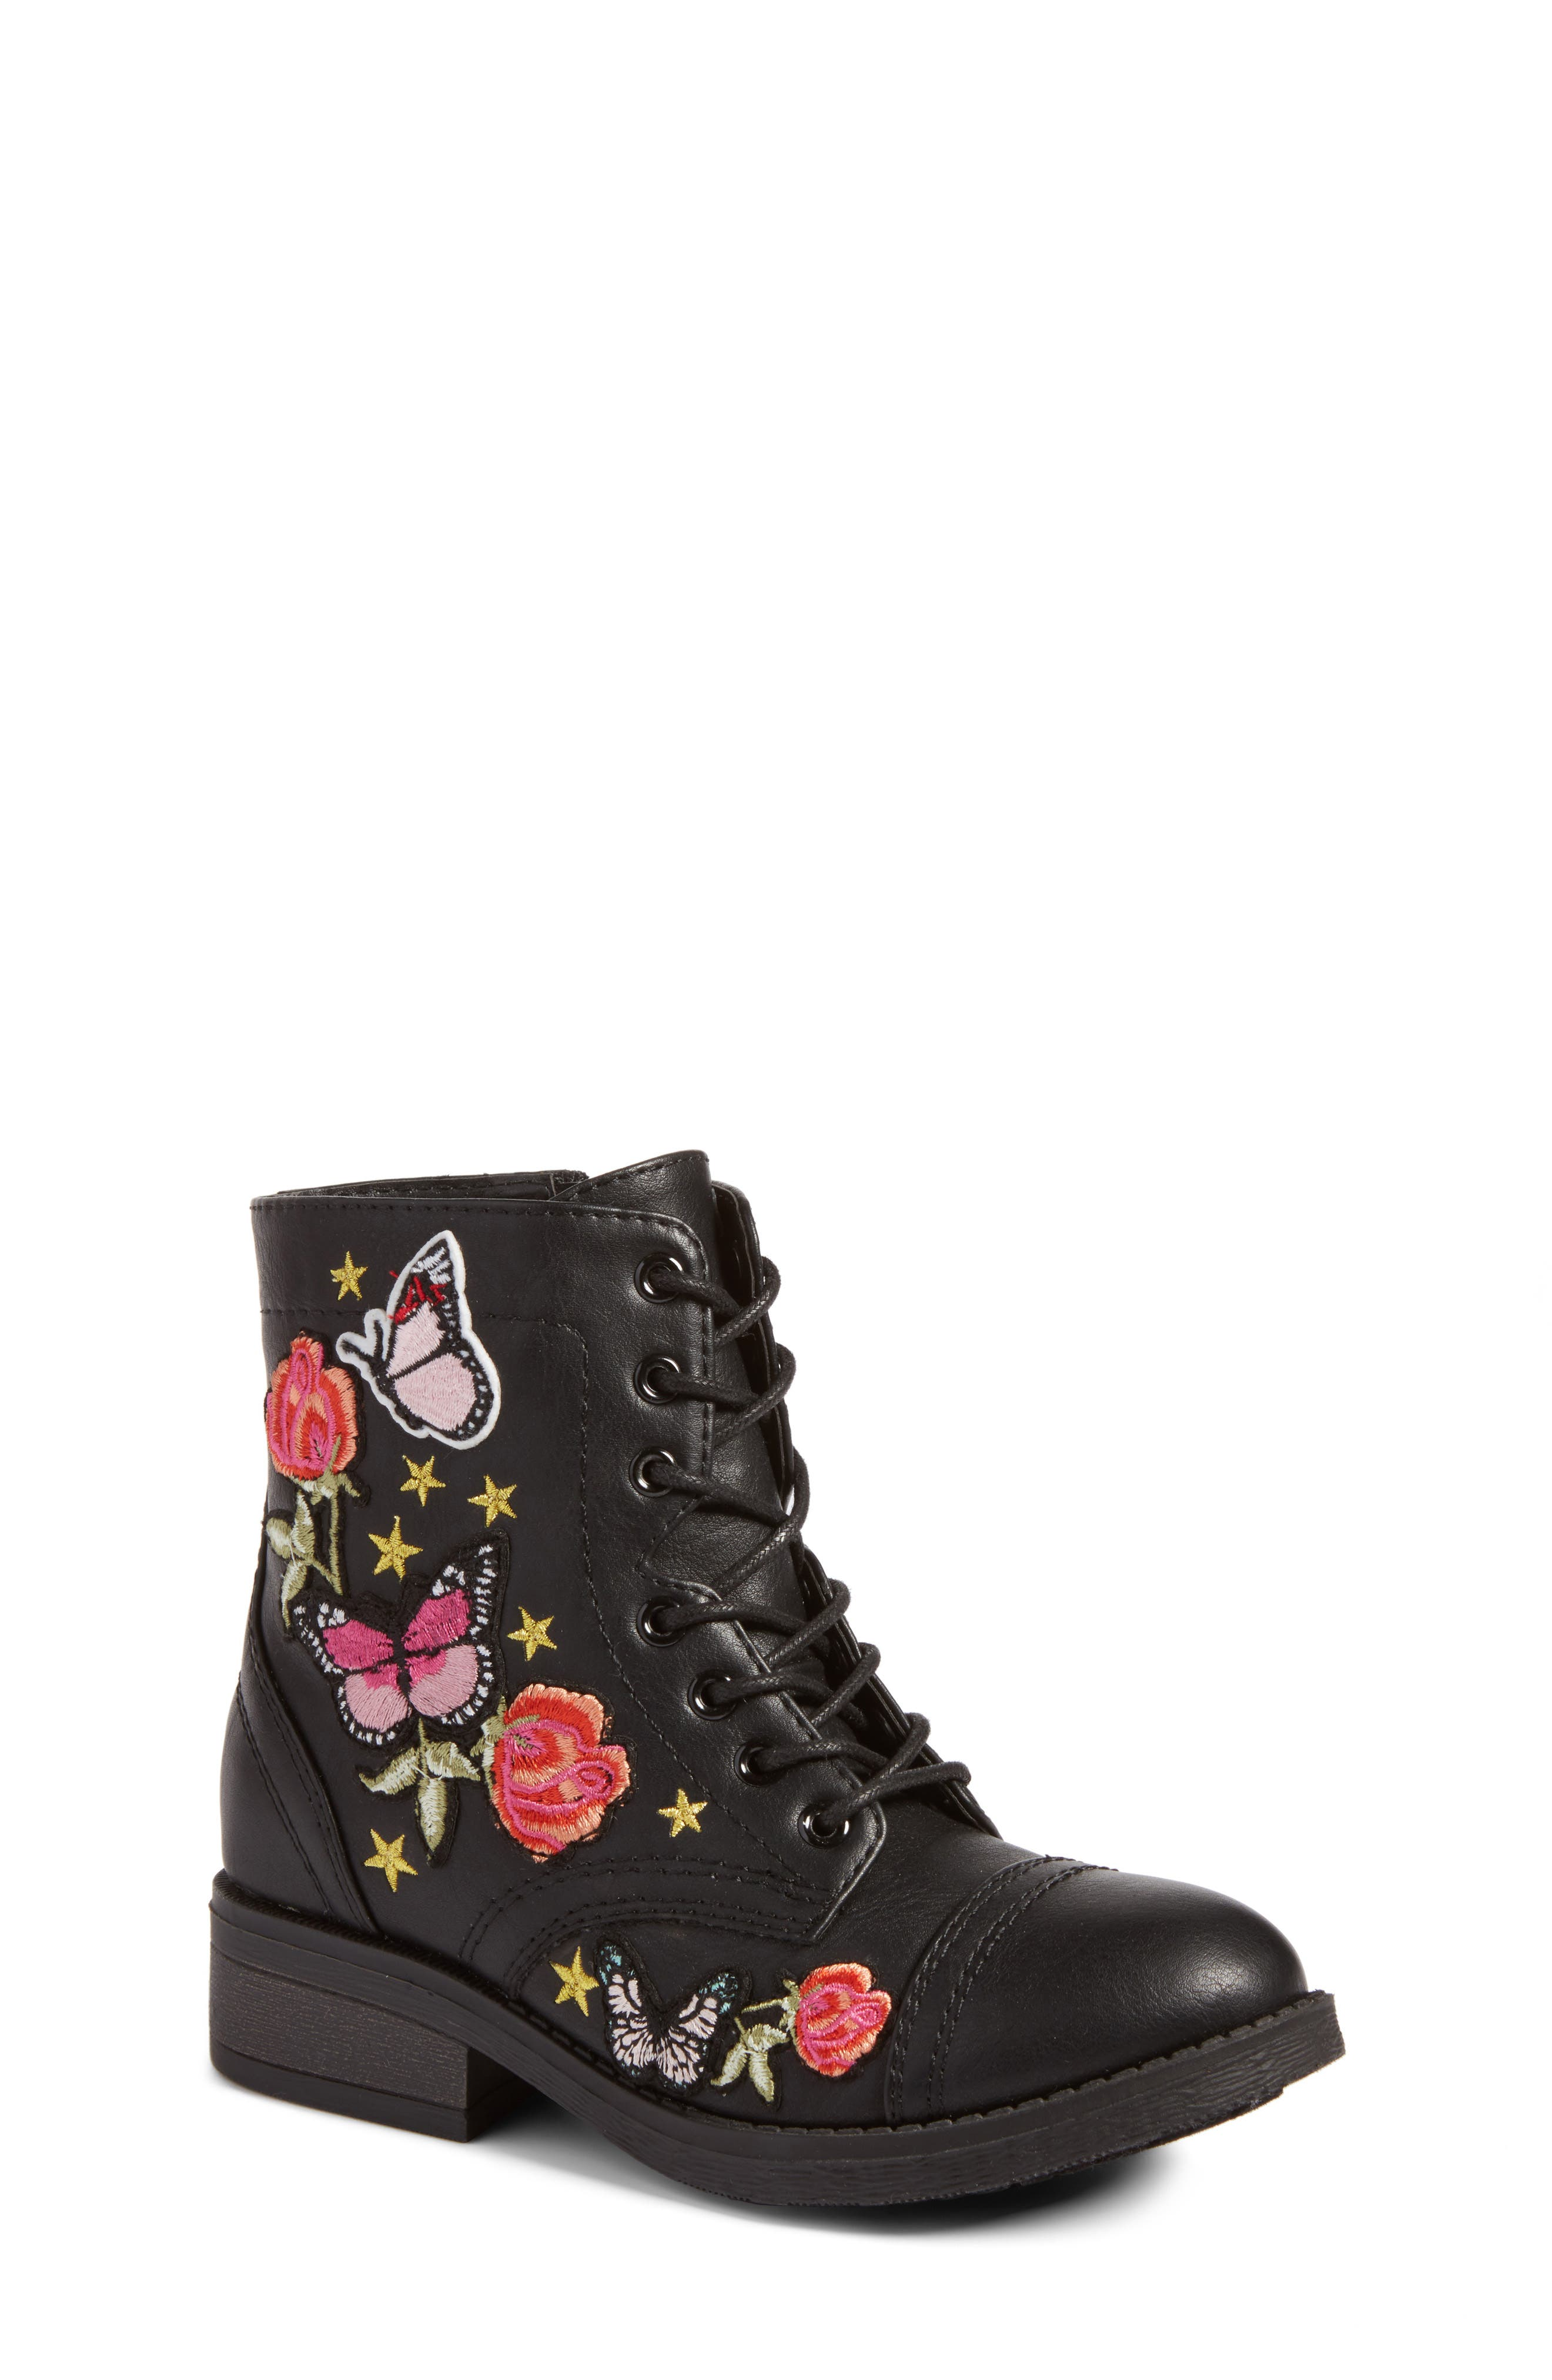 Roaring Embroidered Combat Boot,                             Main thumbnail 1, color,                             Black Faux Leather